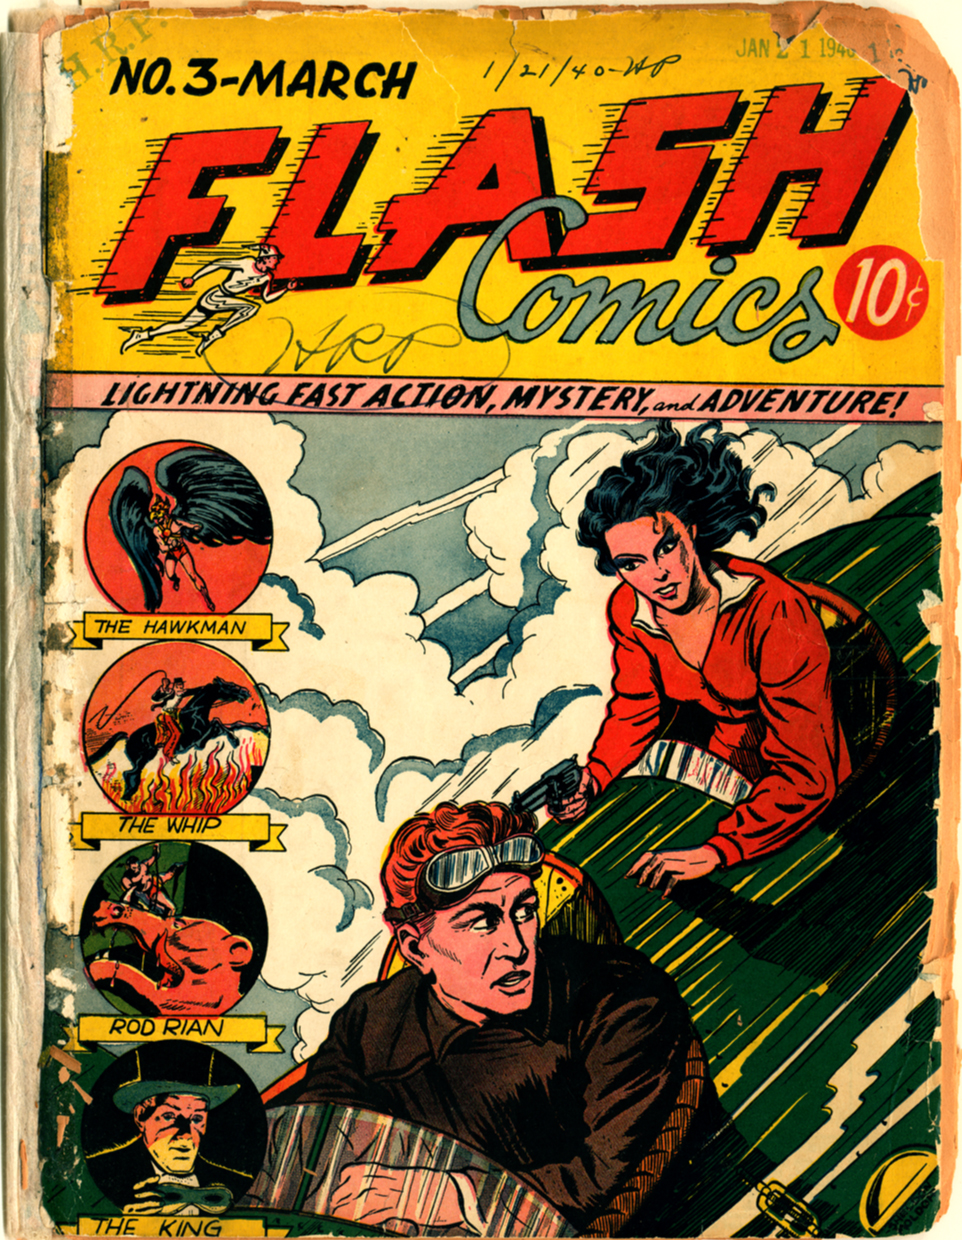 "The March 1940 issue of FLASH shows a man and woman flying a small plane, and the caption ""Lightning fast action, adventure, mystery!"""